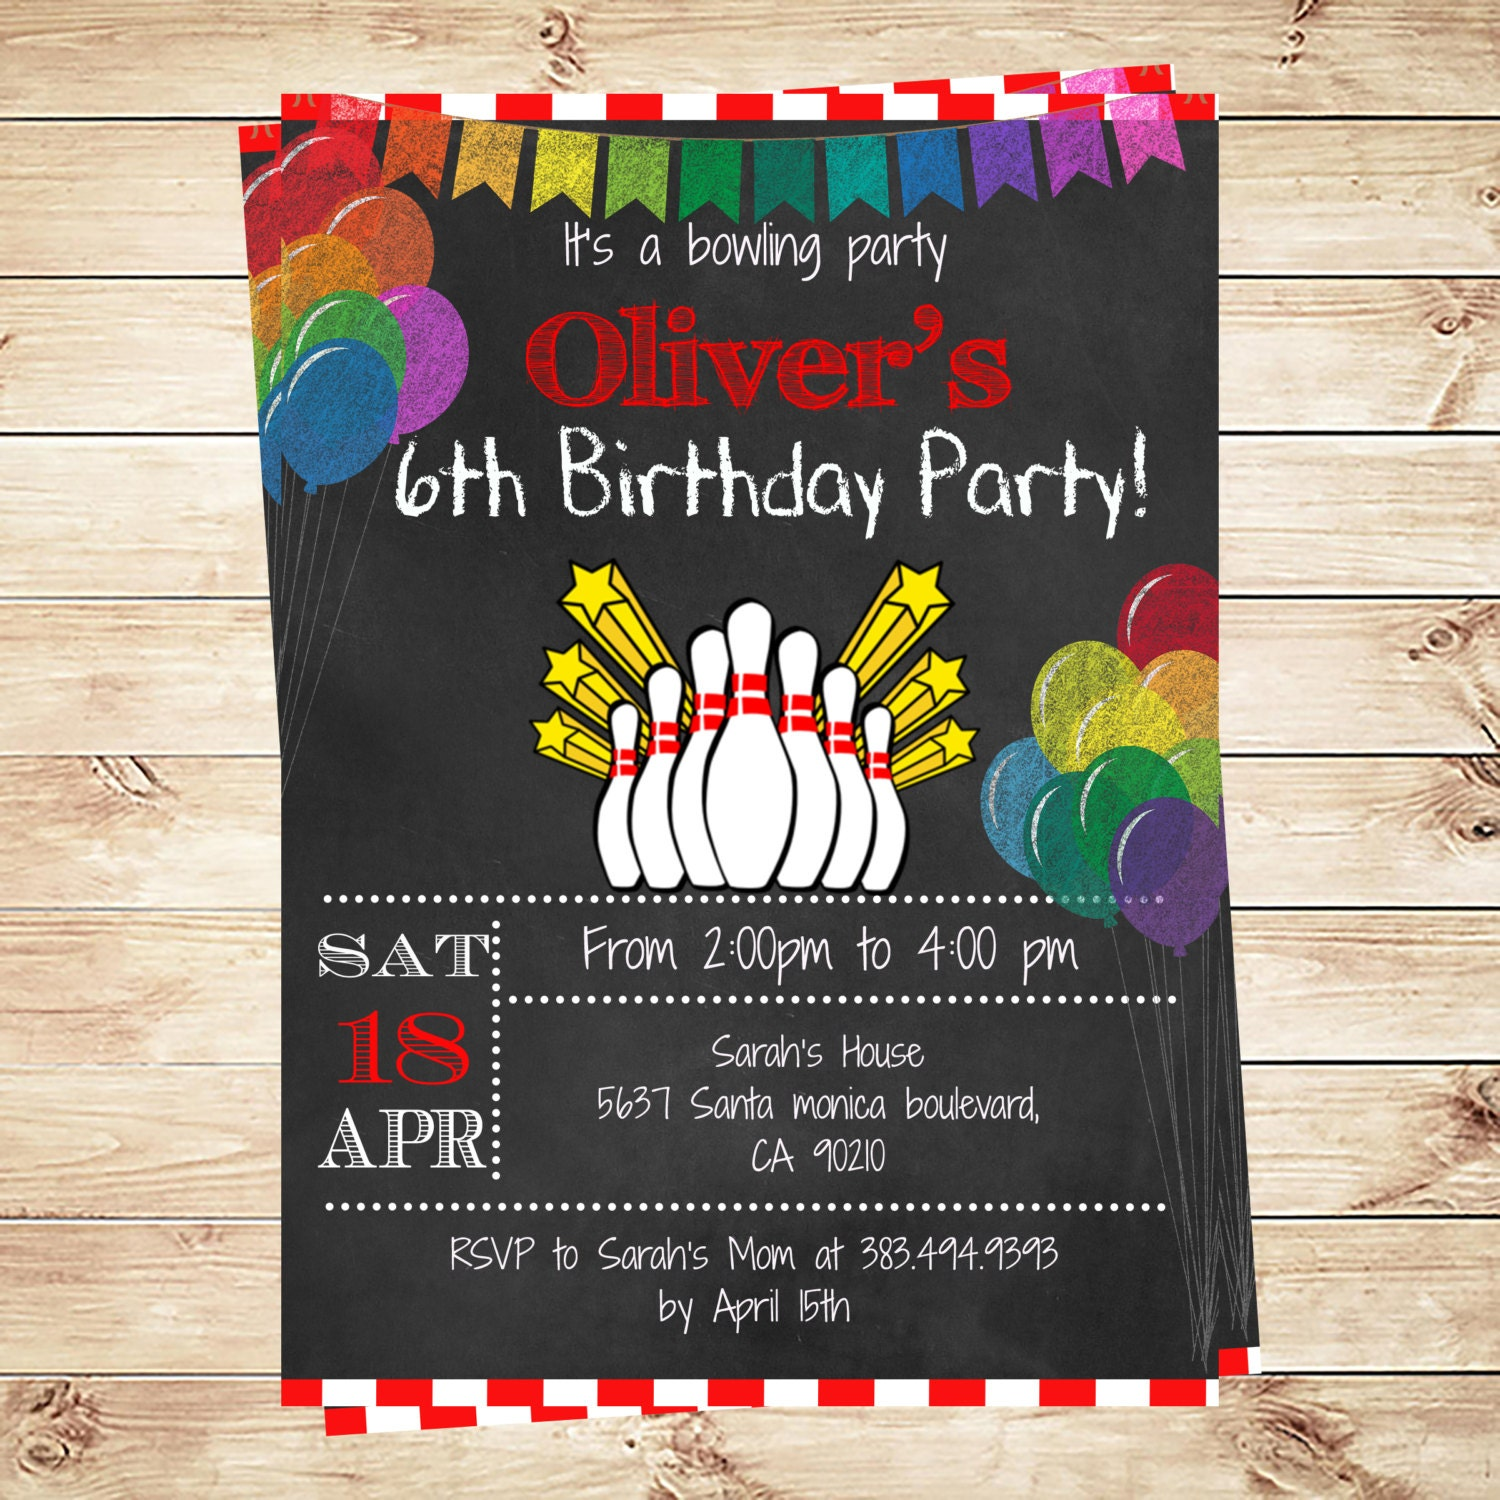 Bowling party invite – Printable Bowling Party Invitations